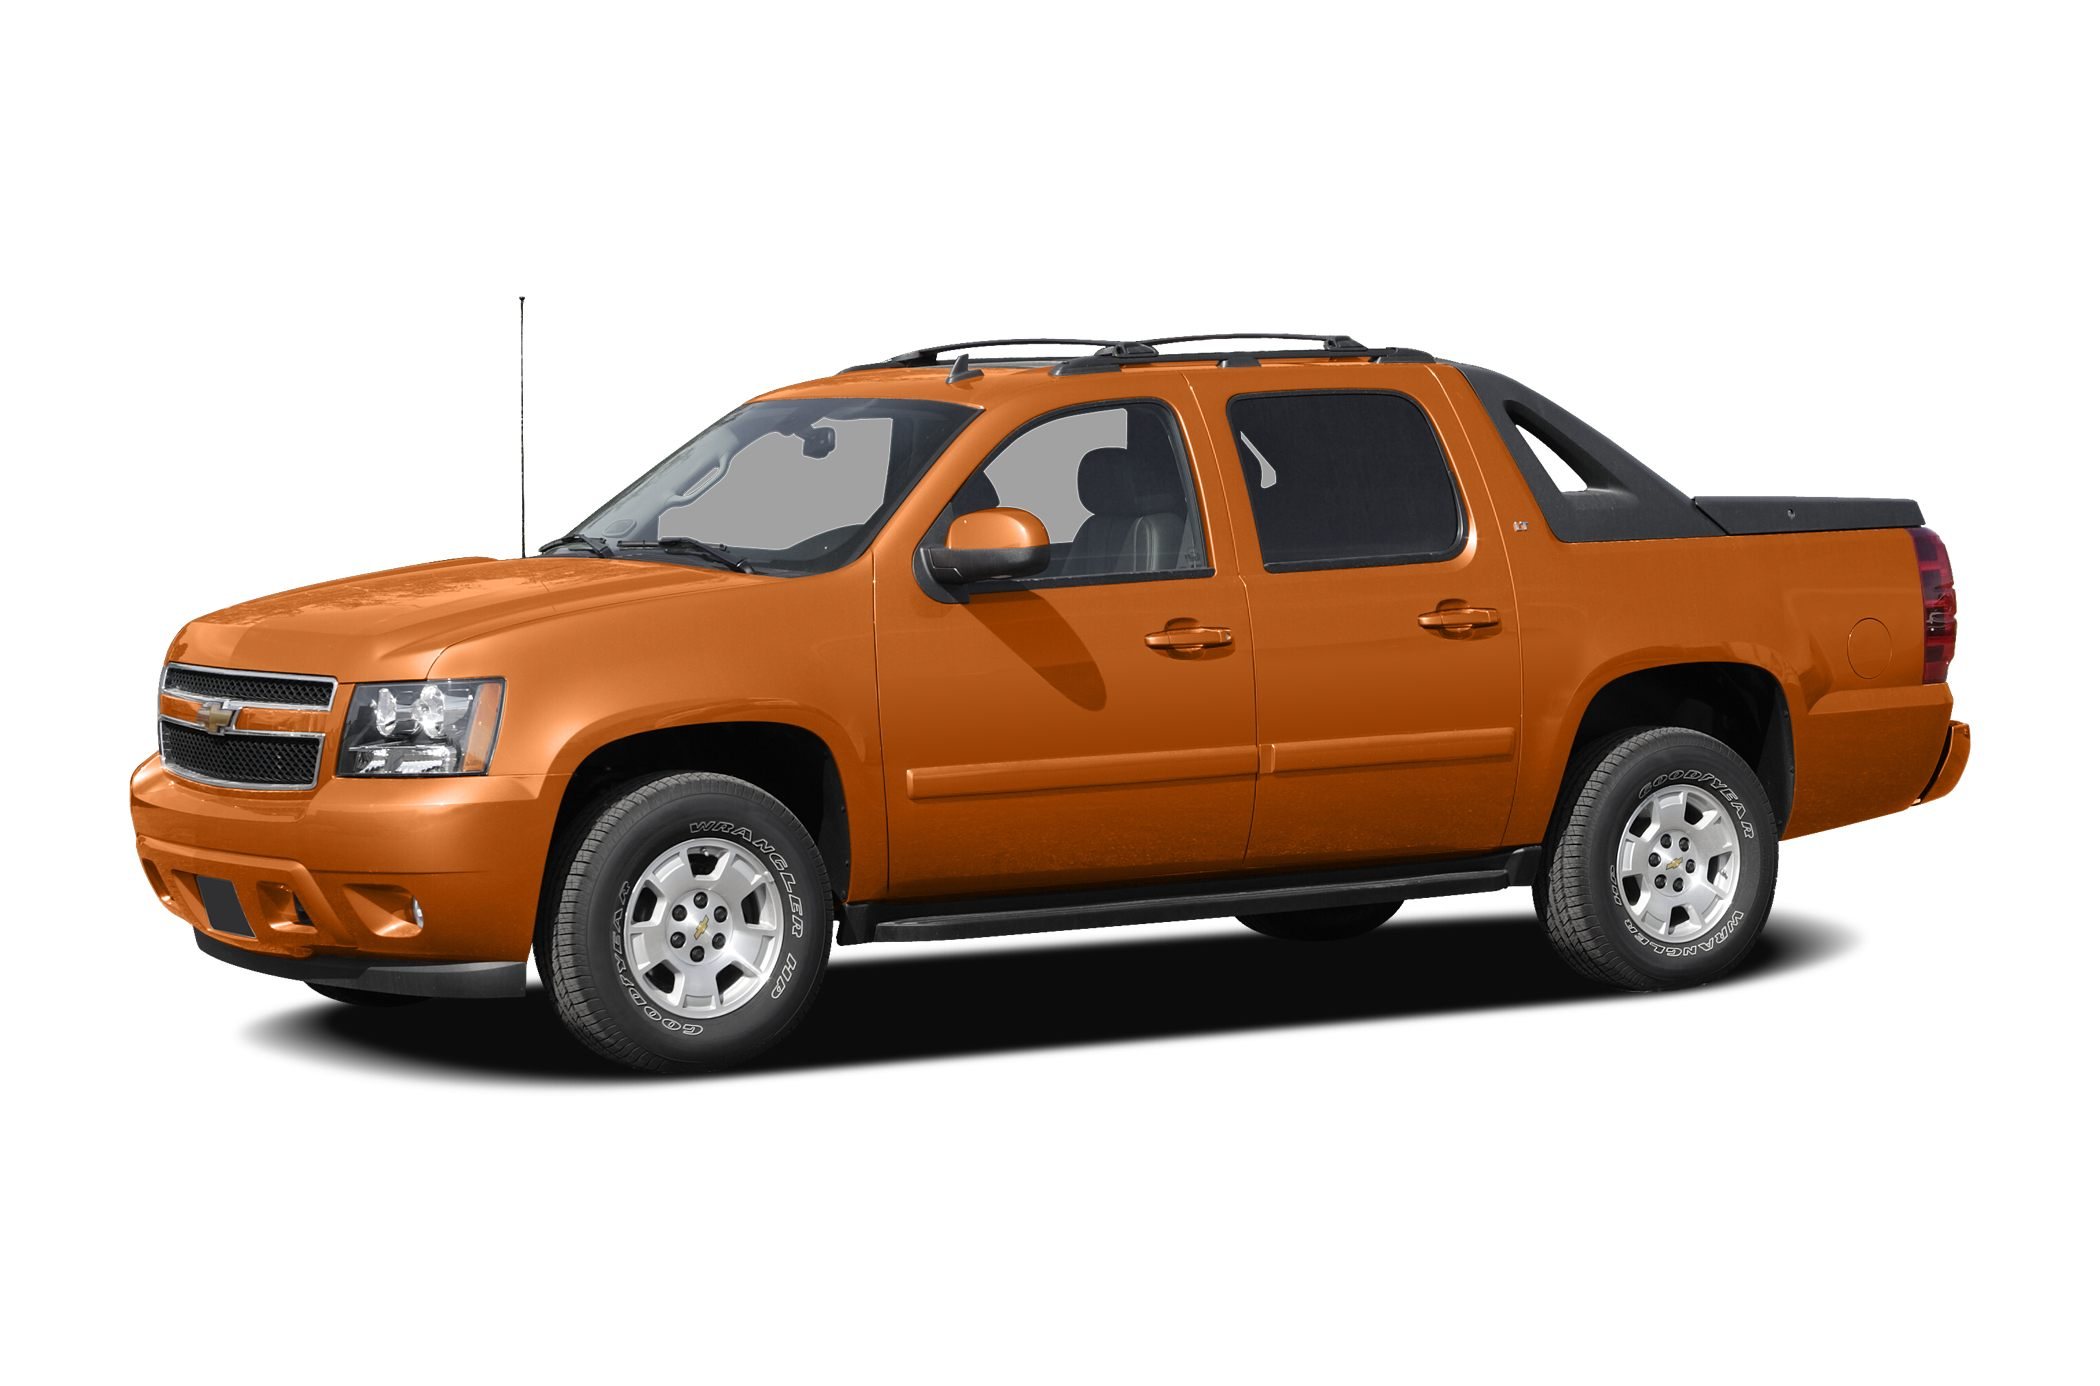 Gmc Vs Chevy >> 2007 Chevrolet Avalanche 1500 Specs, Safety Rating & MPG - CarsDirect